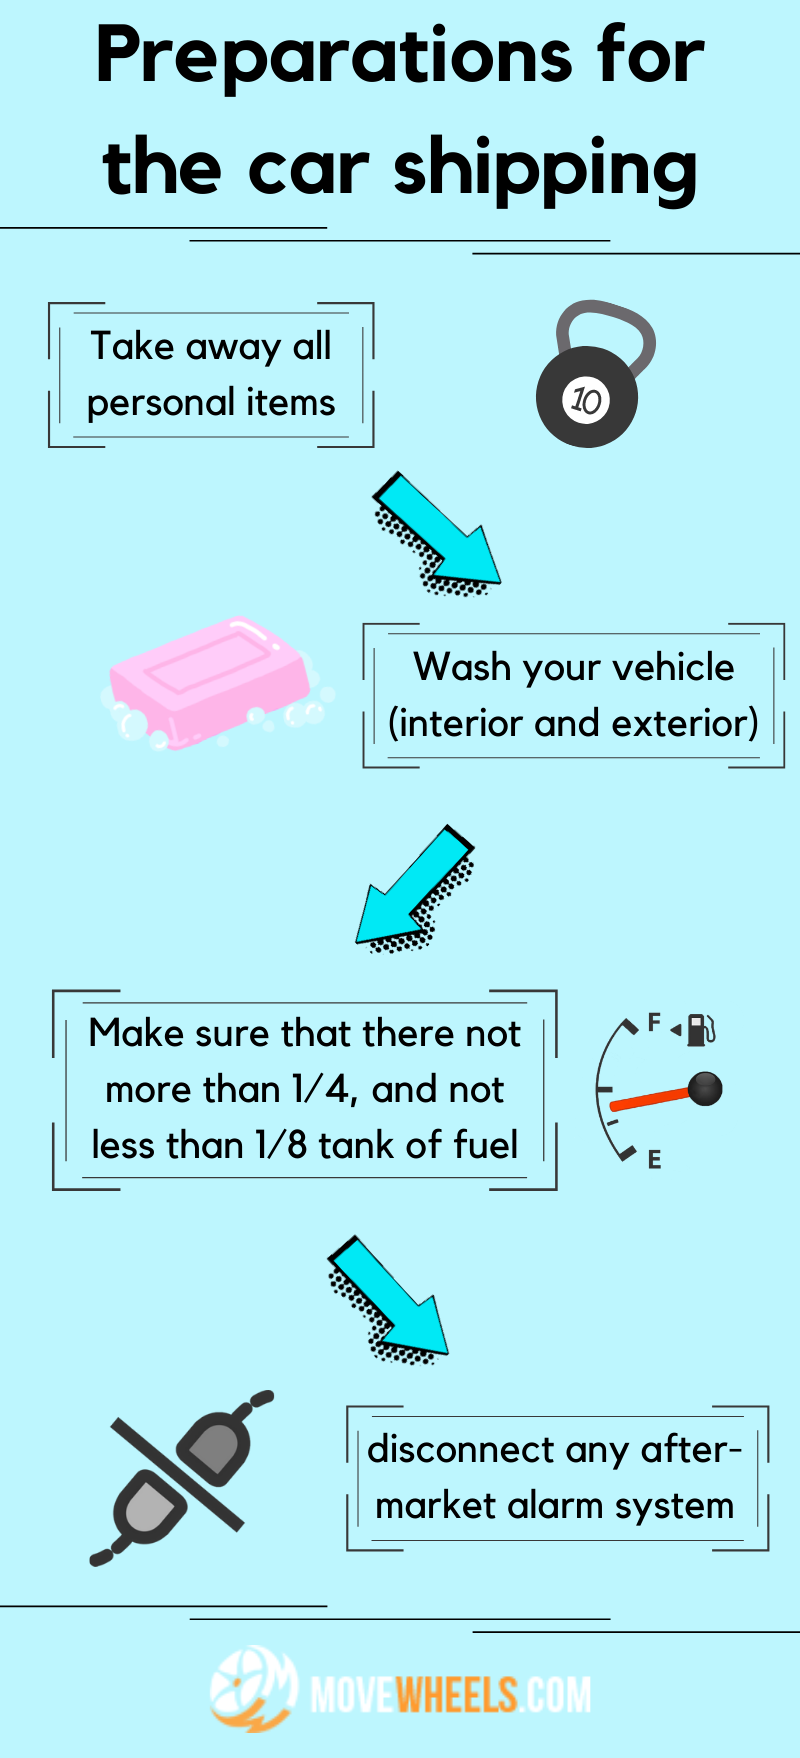 How to prepare car to shipping to HI